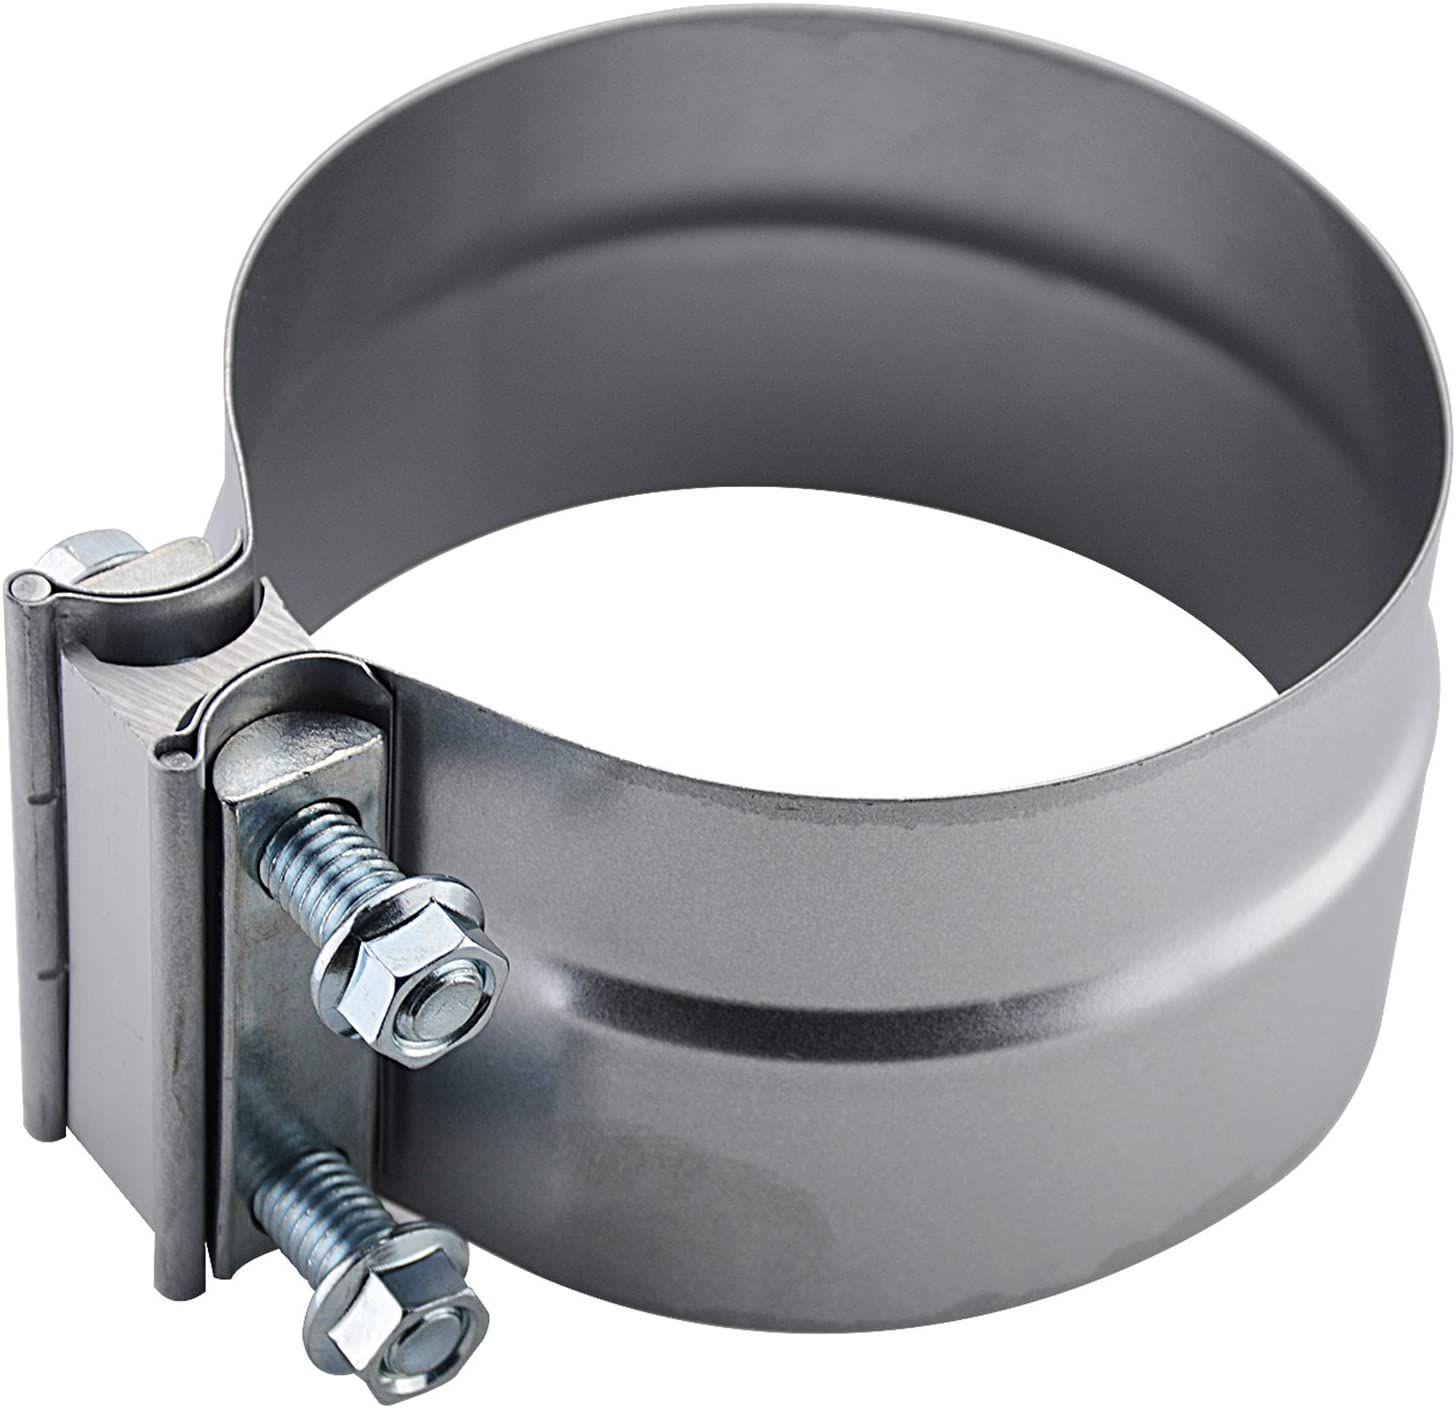 SmartParts 120500 5 Butt Joint Aluminized Steel Exhaust Clamp with I Block